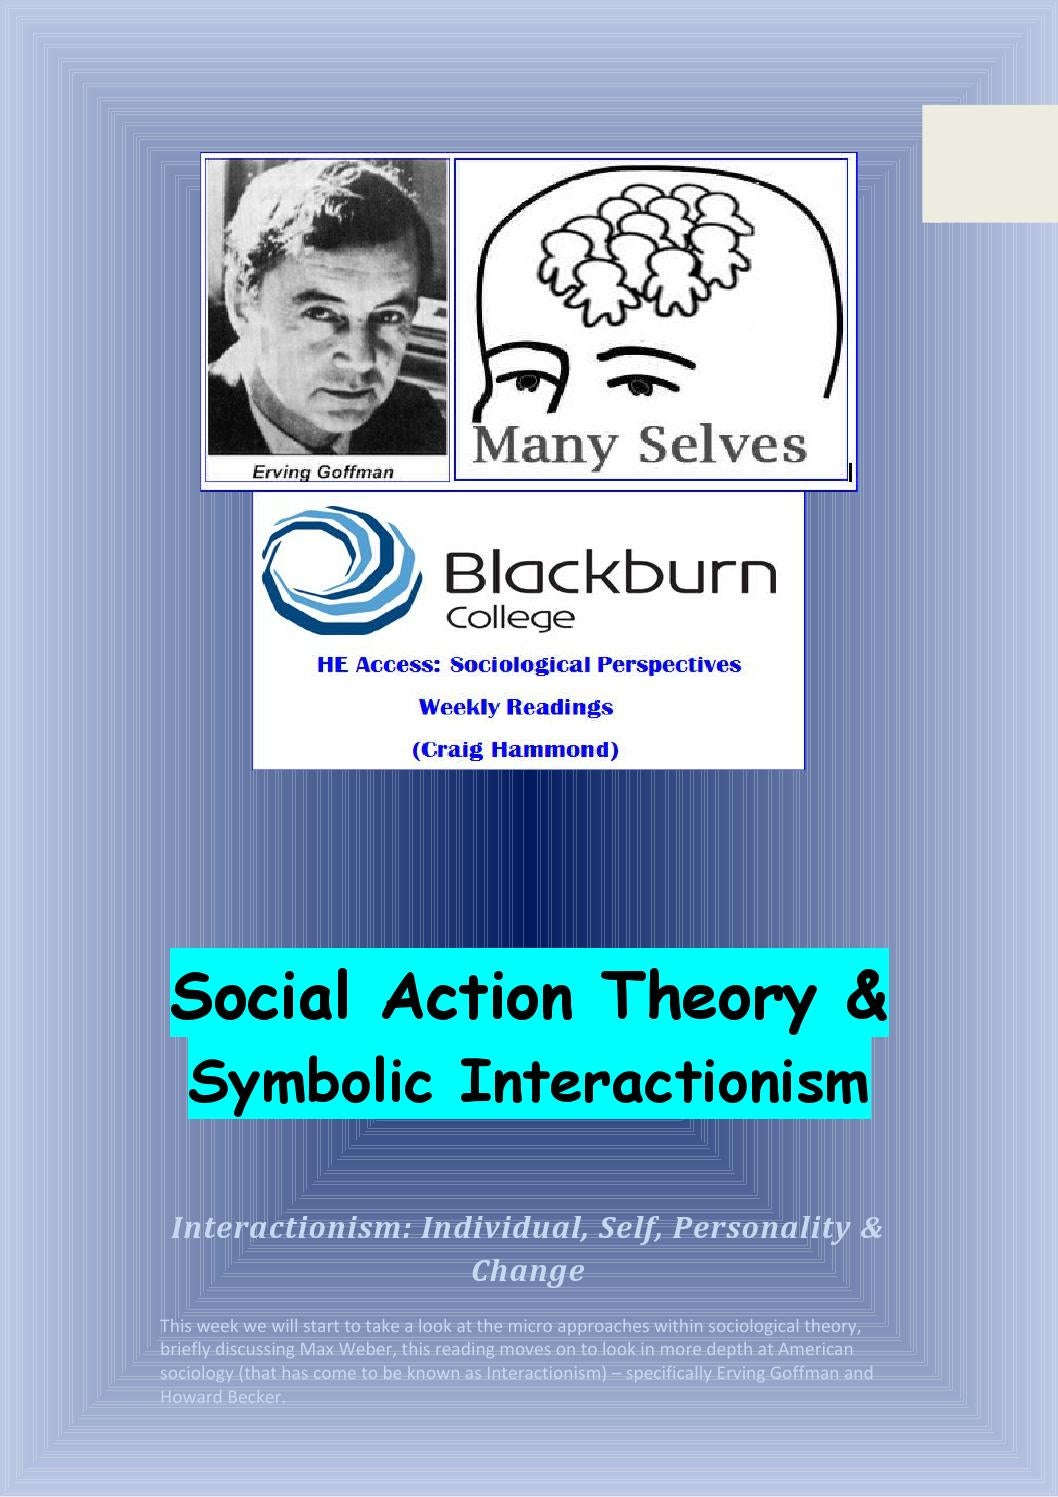 Week 7 Introduction To Social Action Theory Interactionism